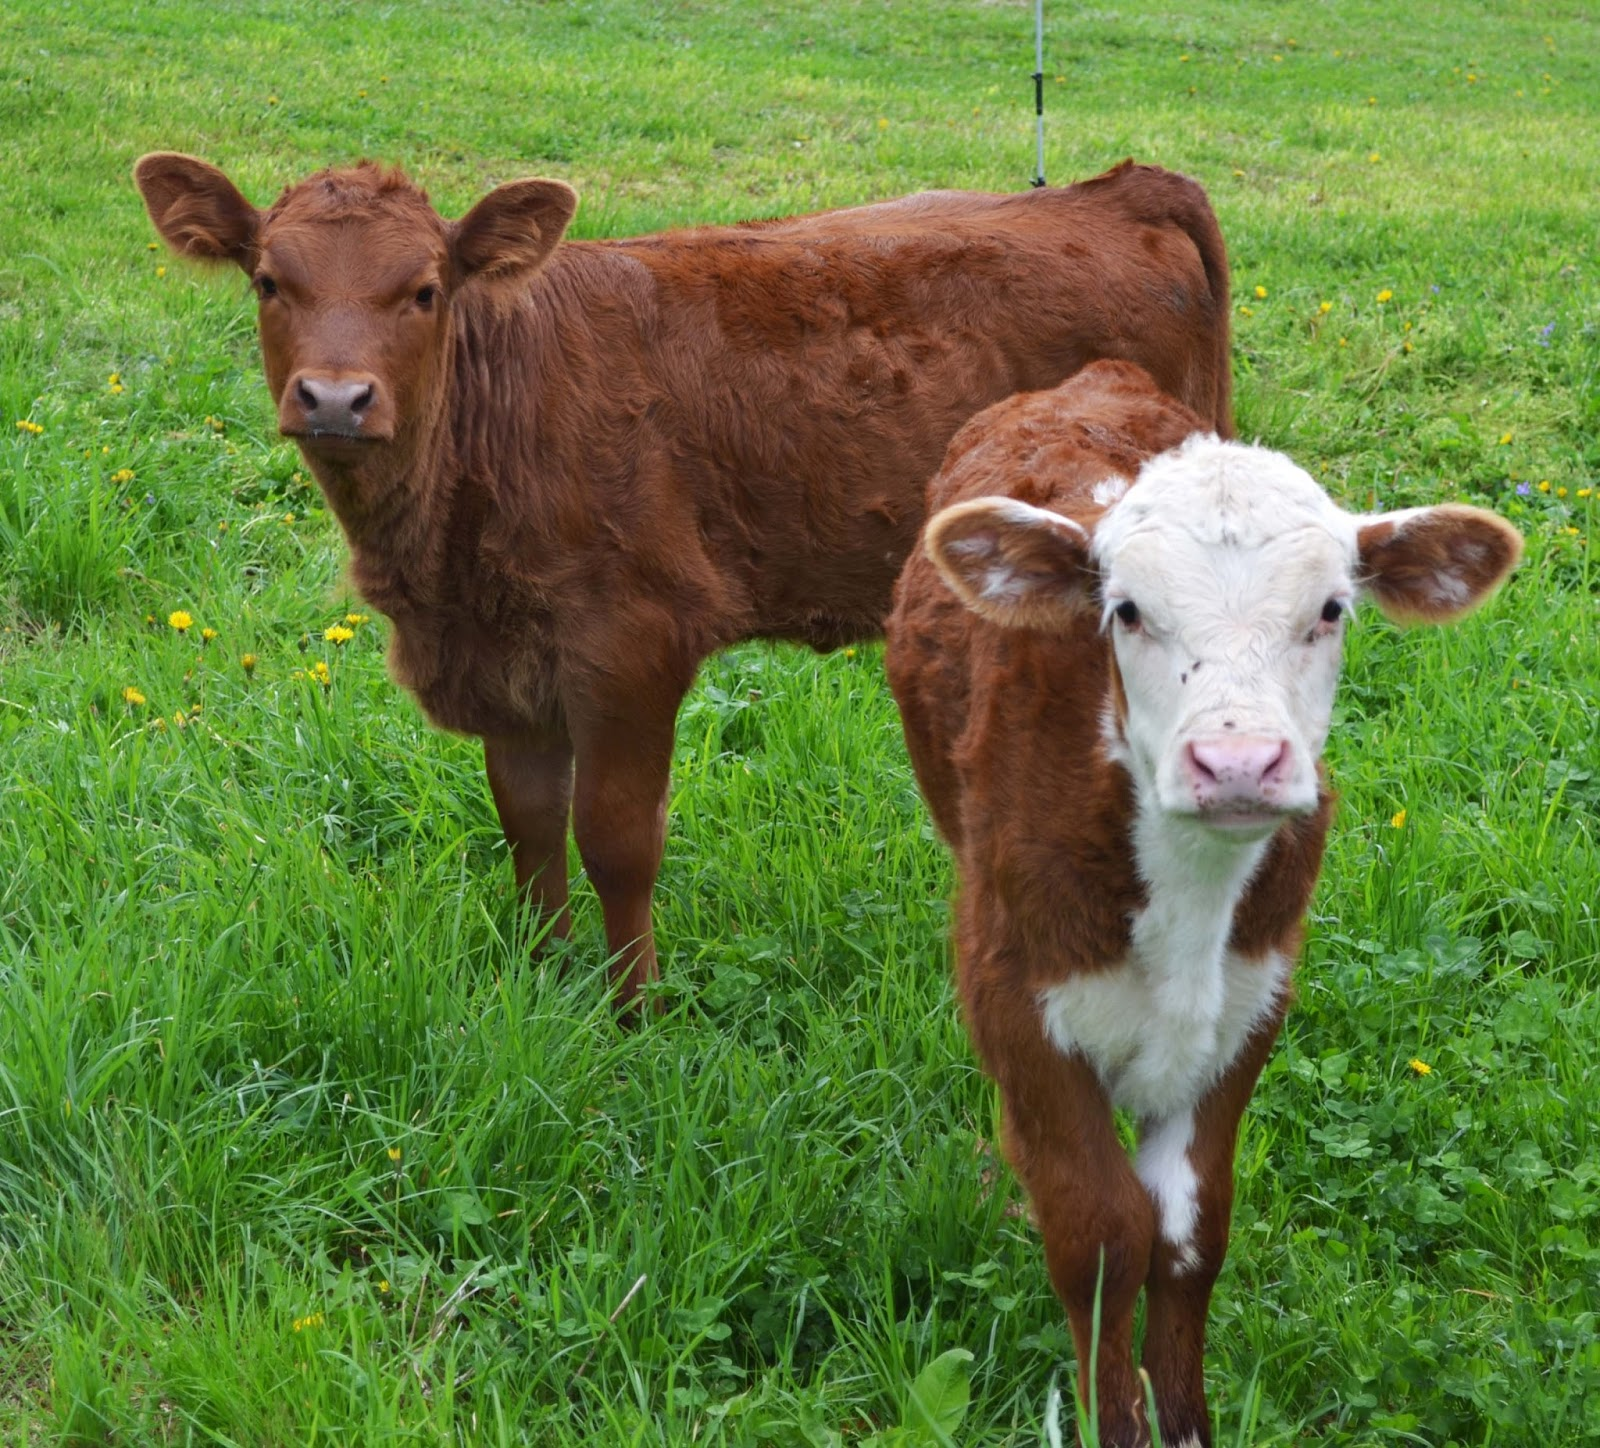 brown calves